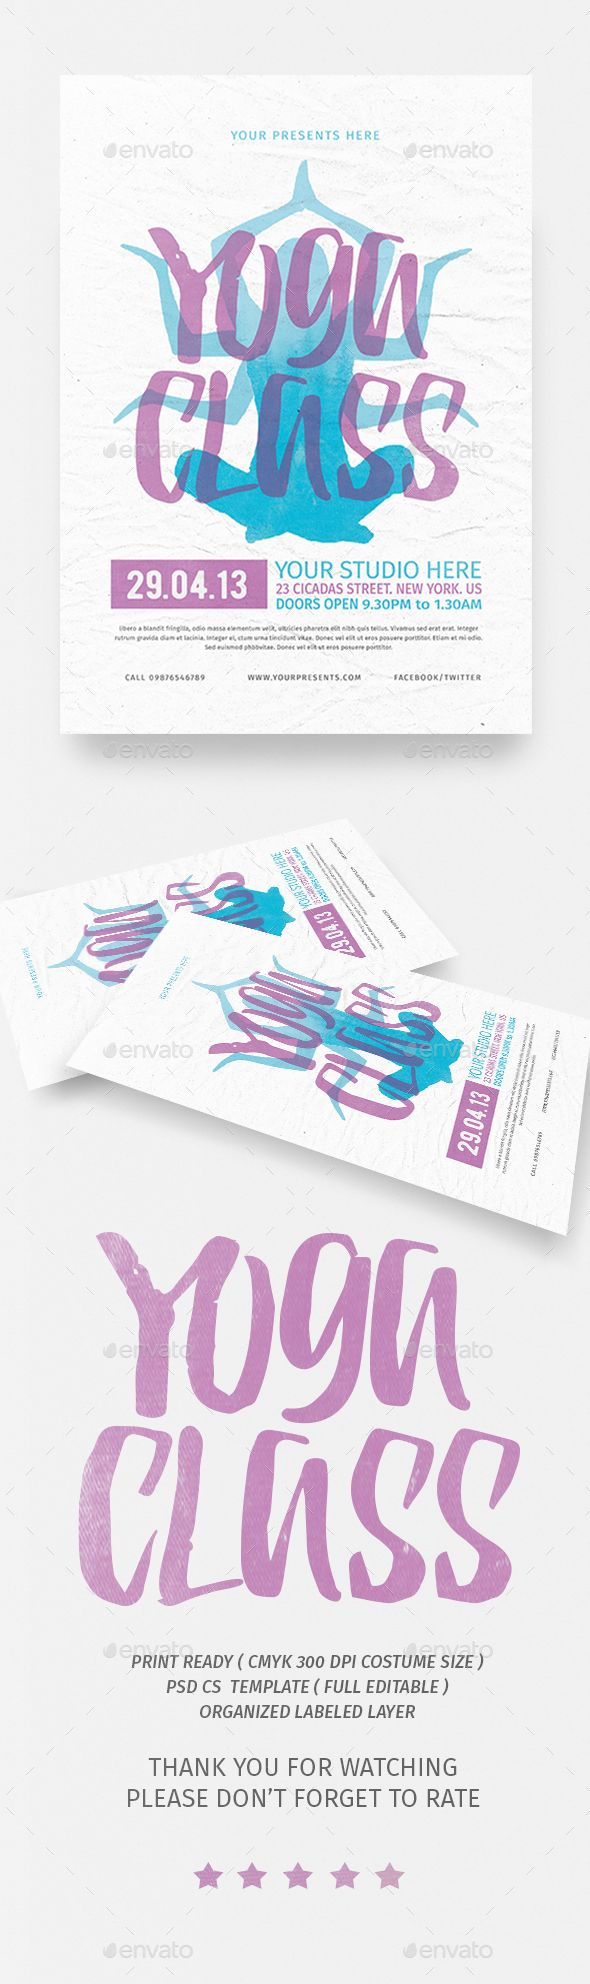 yoga class event flyer poster template fitness events psd yoga class flyer template only available here ➝ graphicriver